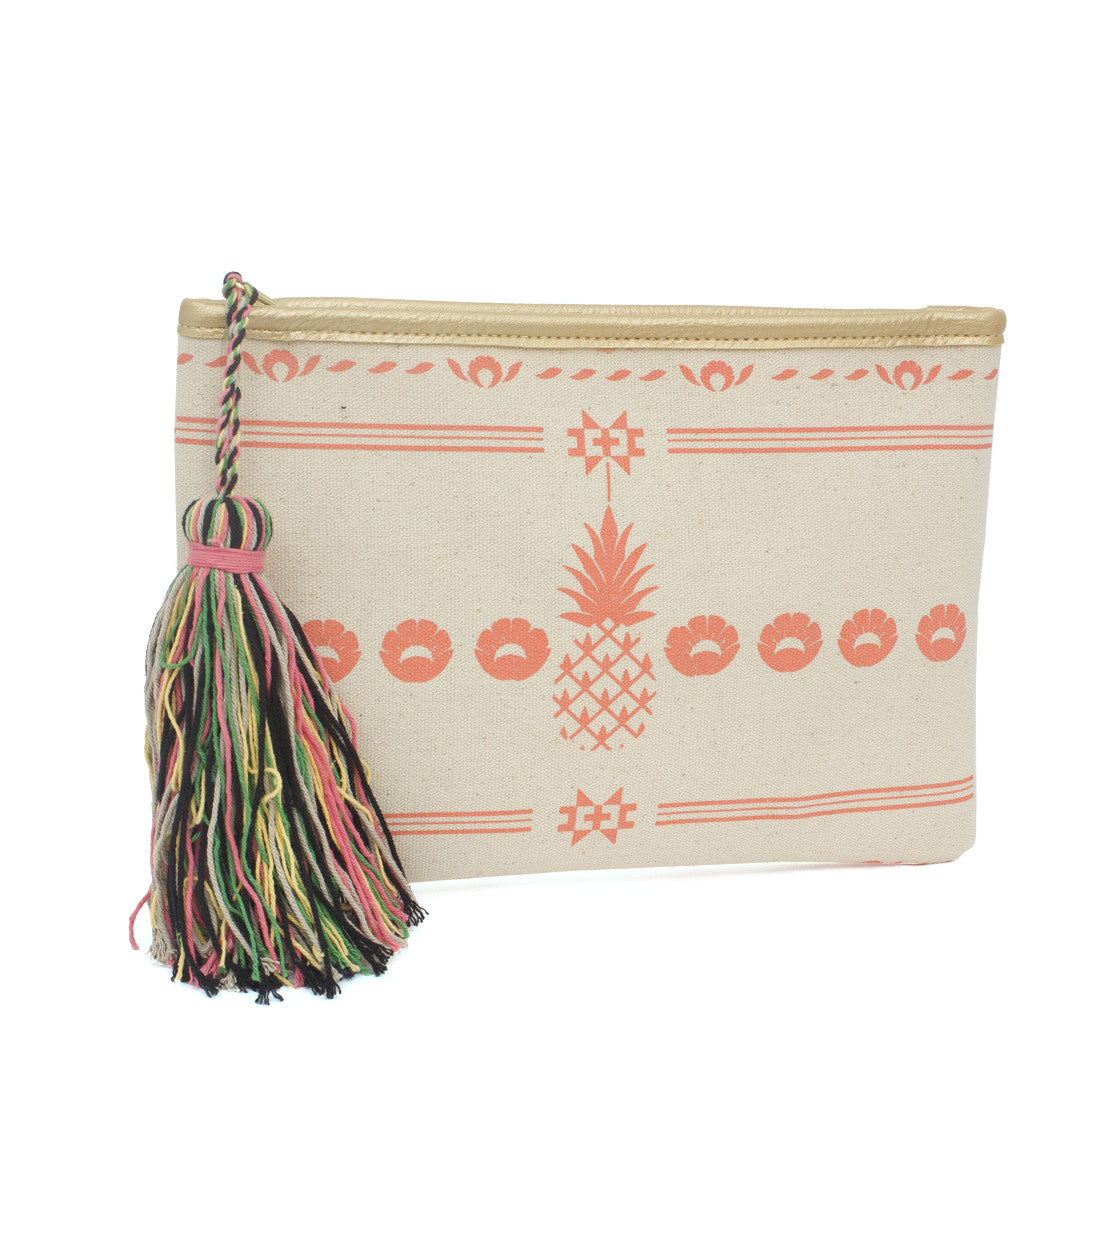 Pineapple Aztec Clutch with Tassel